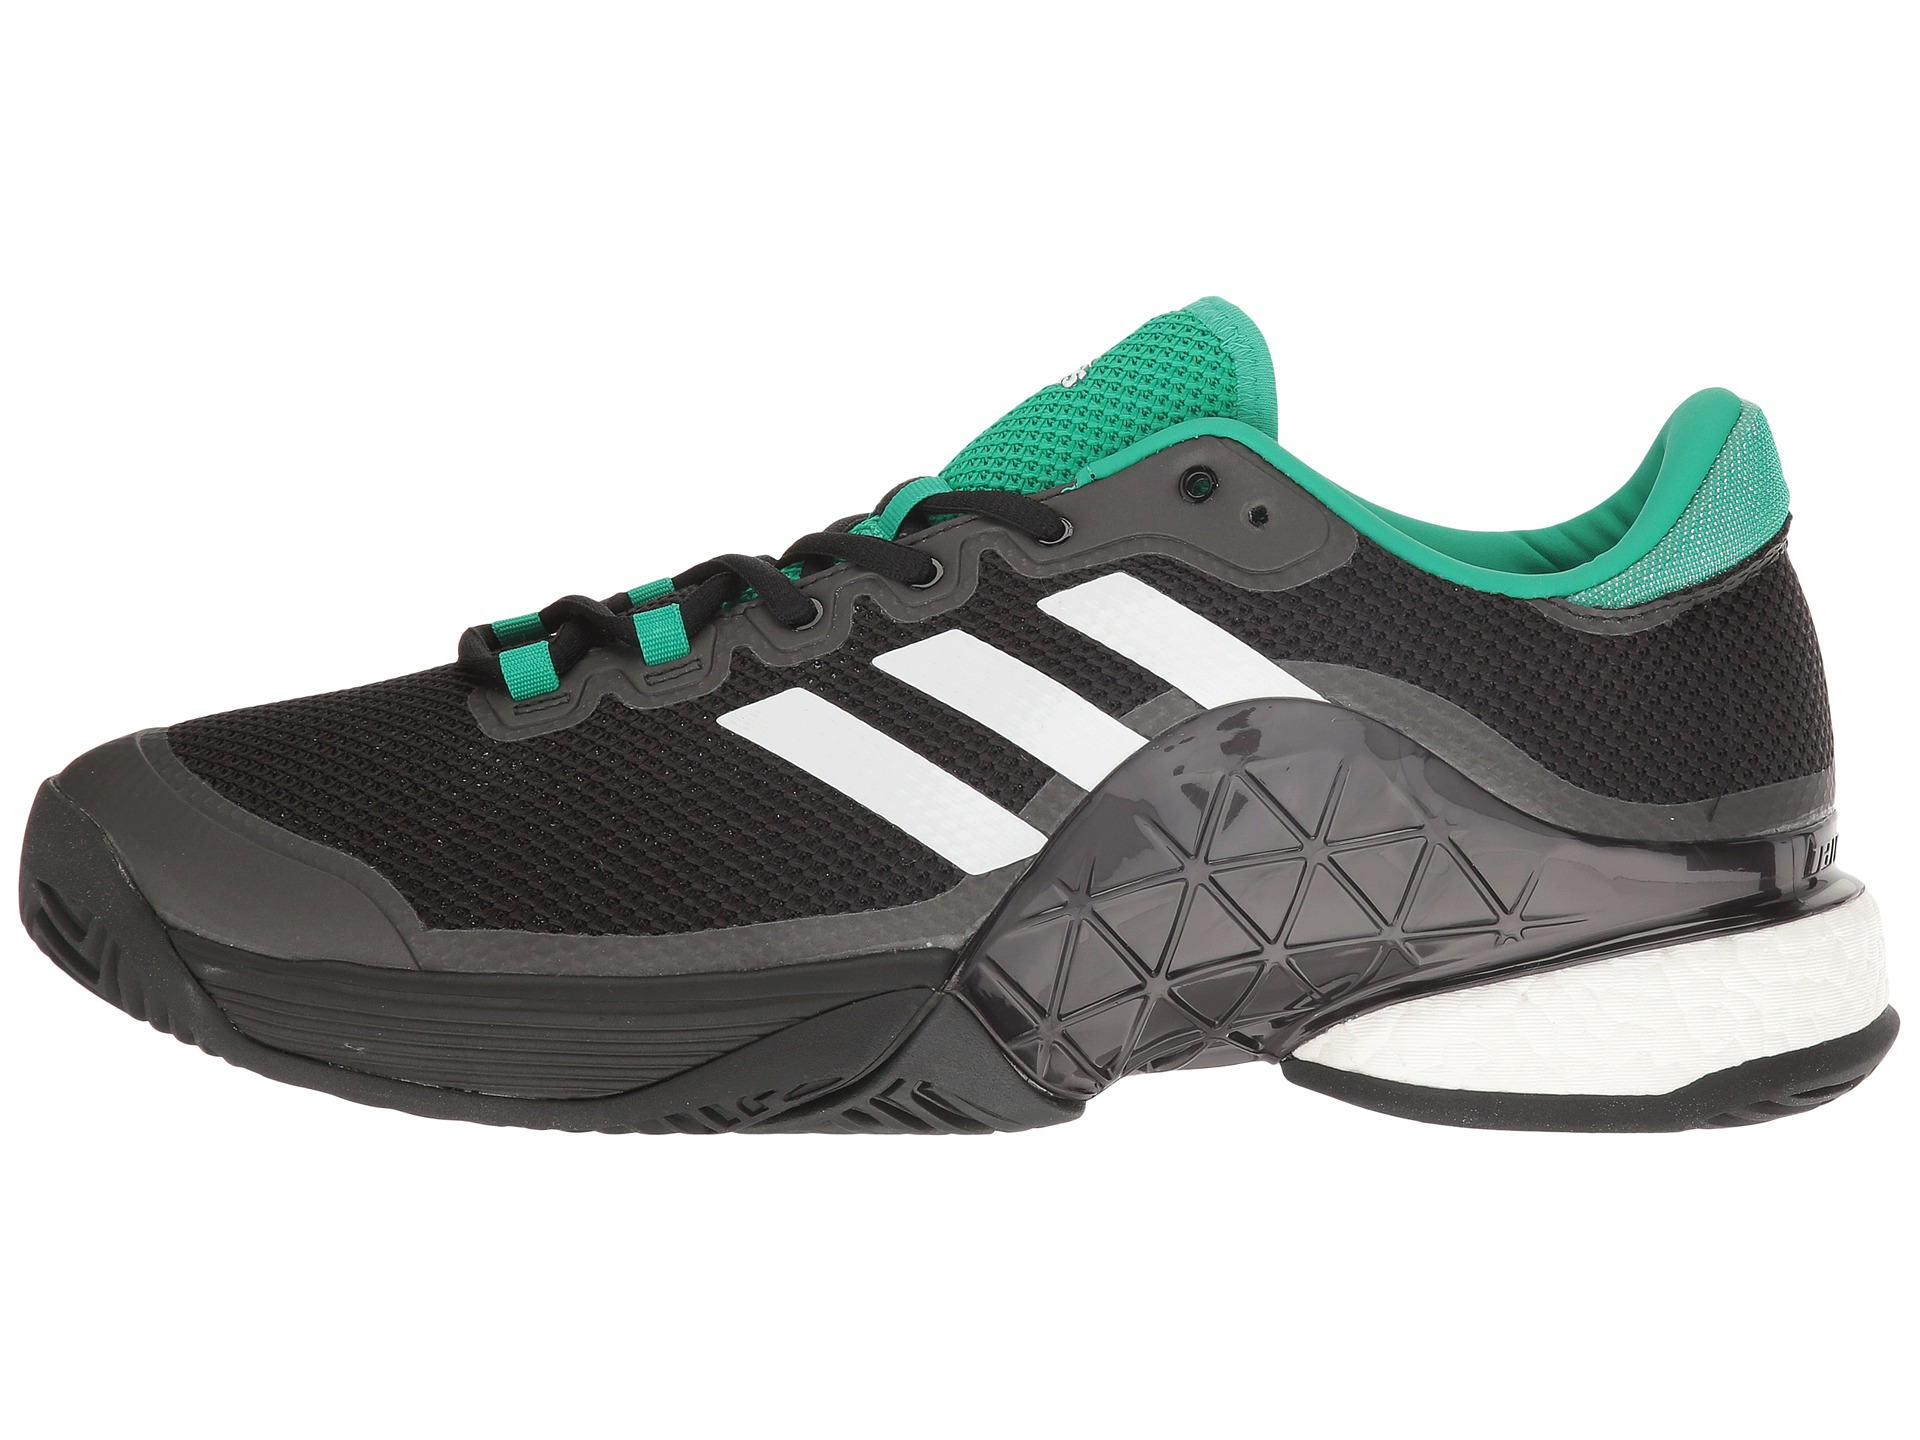 Adidas Boost Shoes Zappos